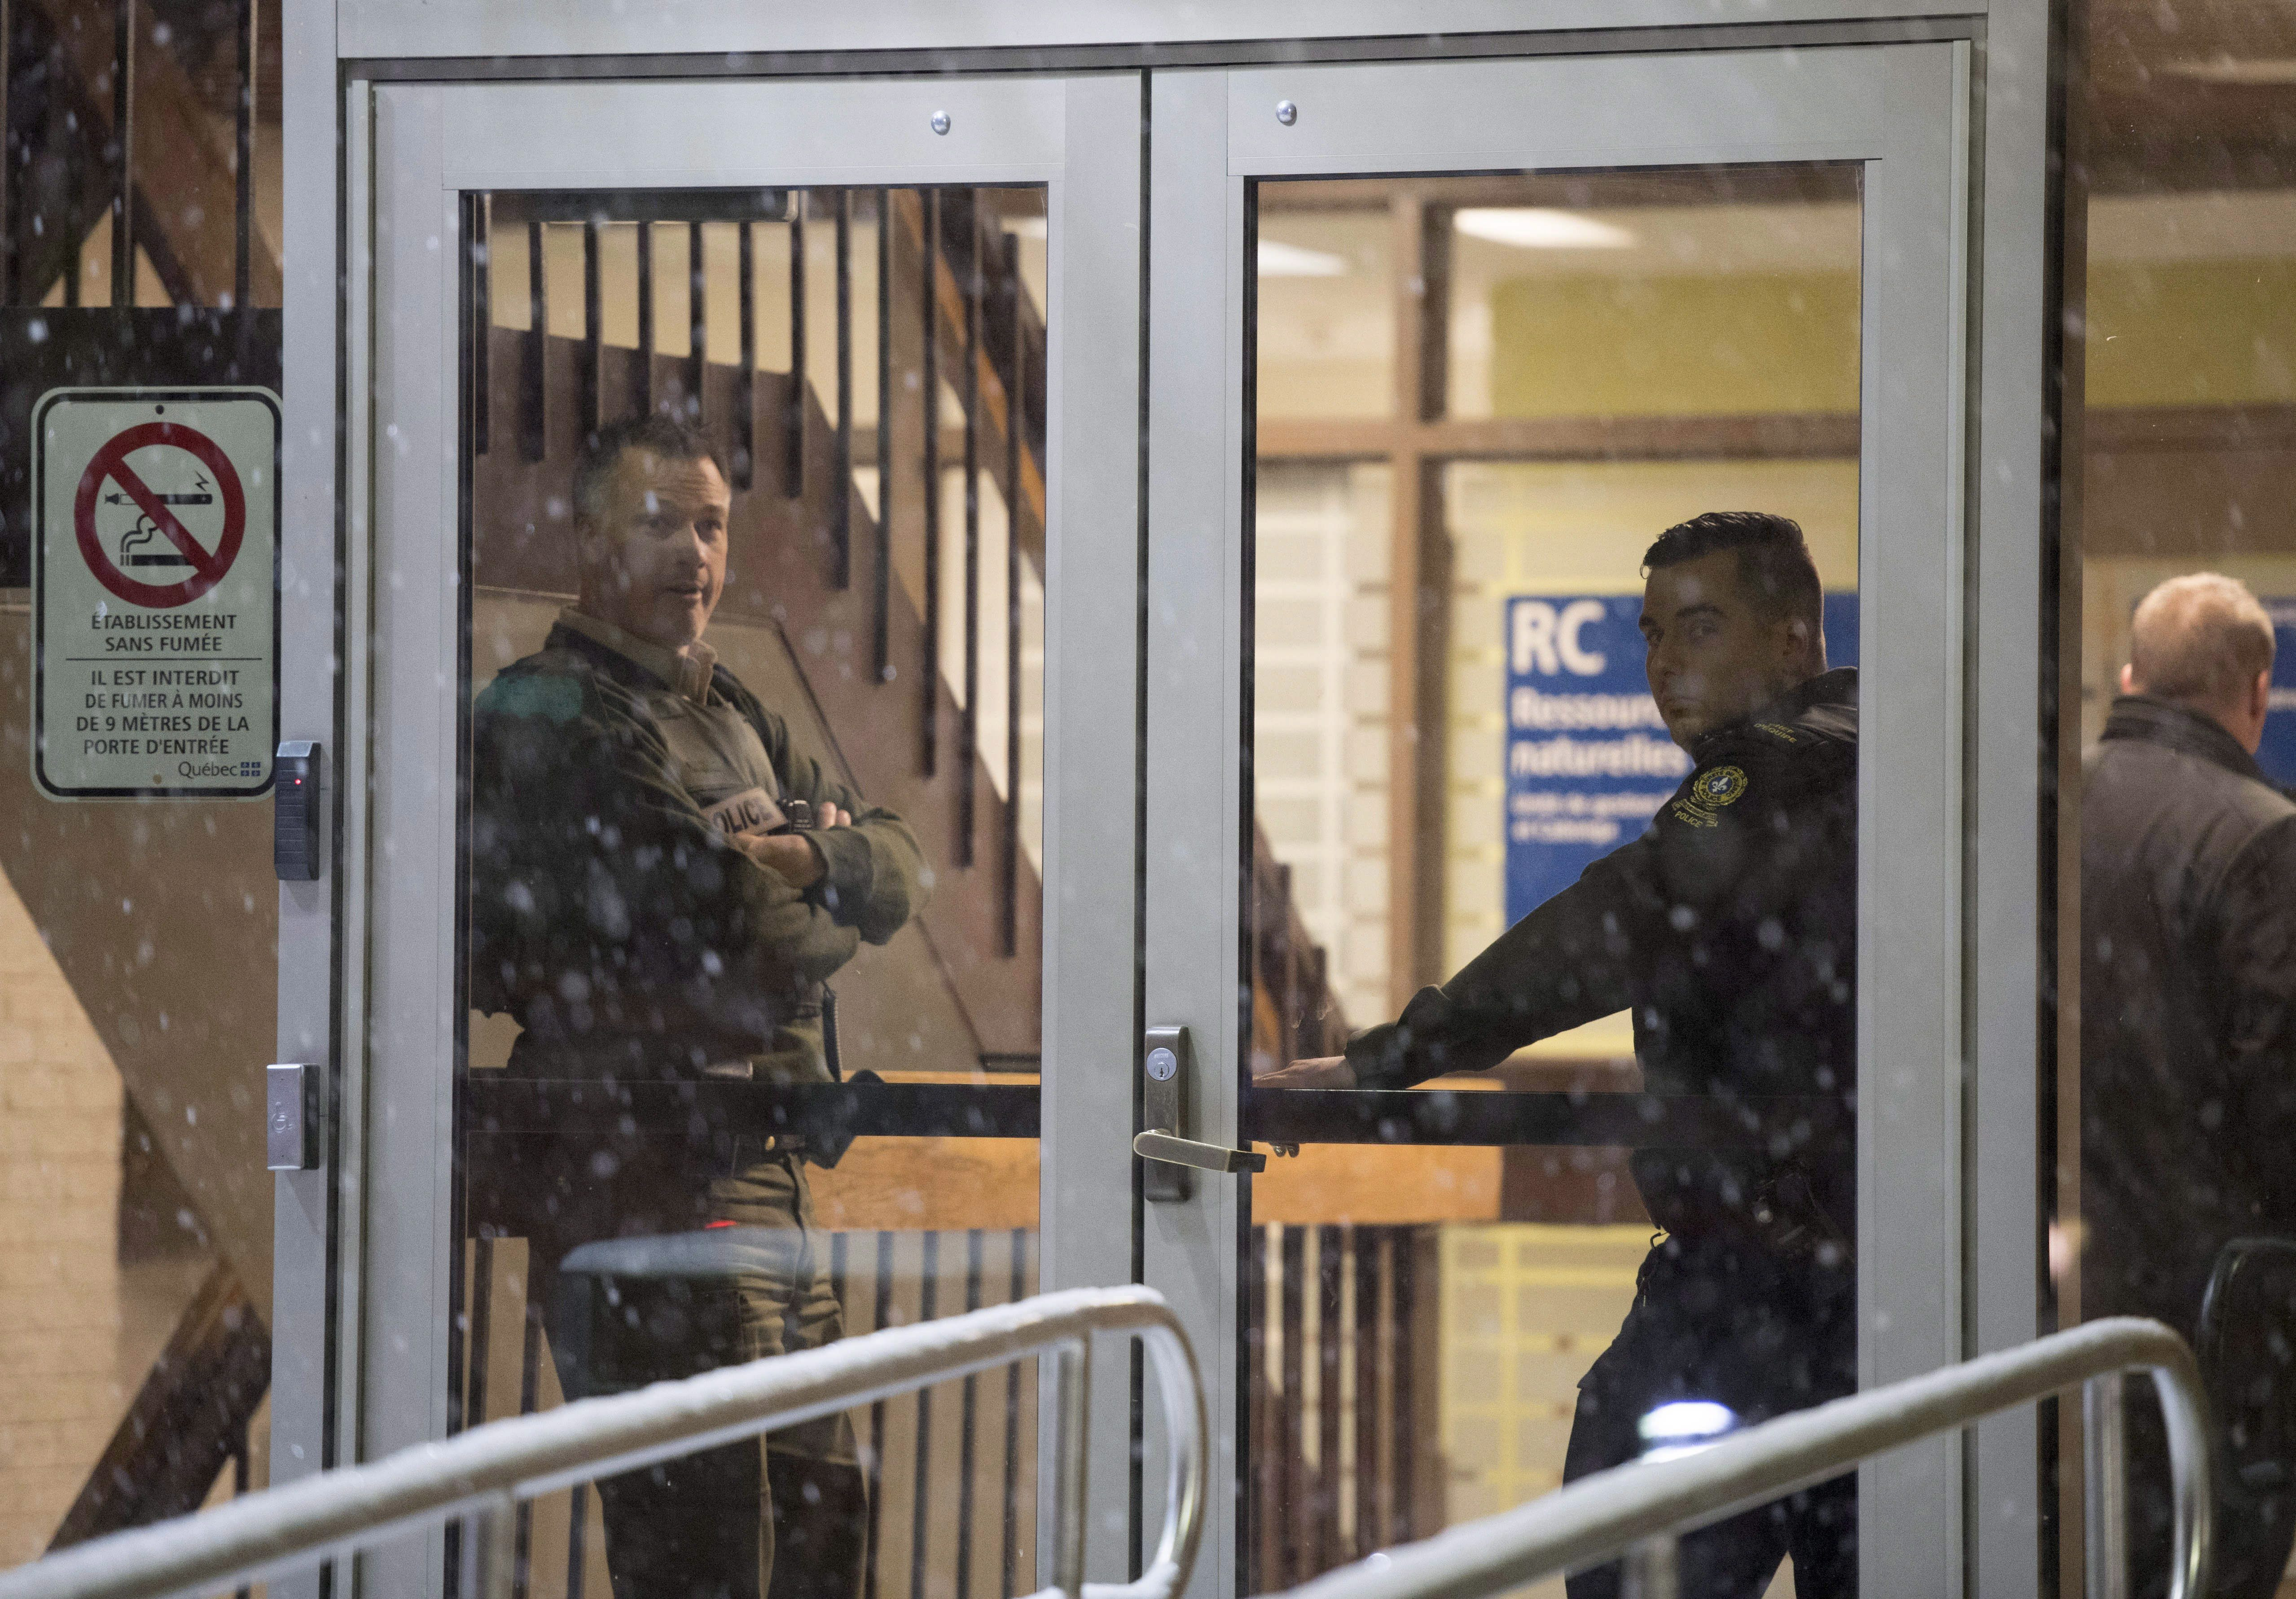 Police stand in the front doors of the courthouse in Maniwaki, Que. after two people were injured in...